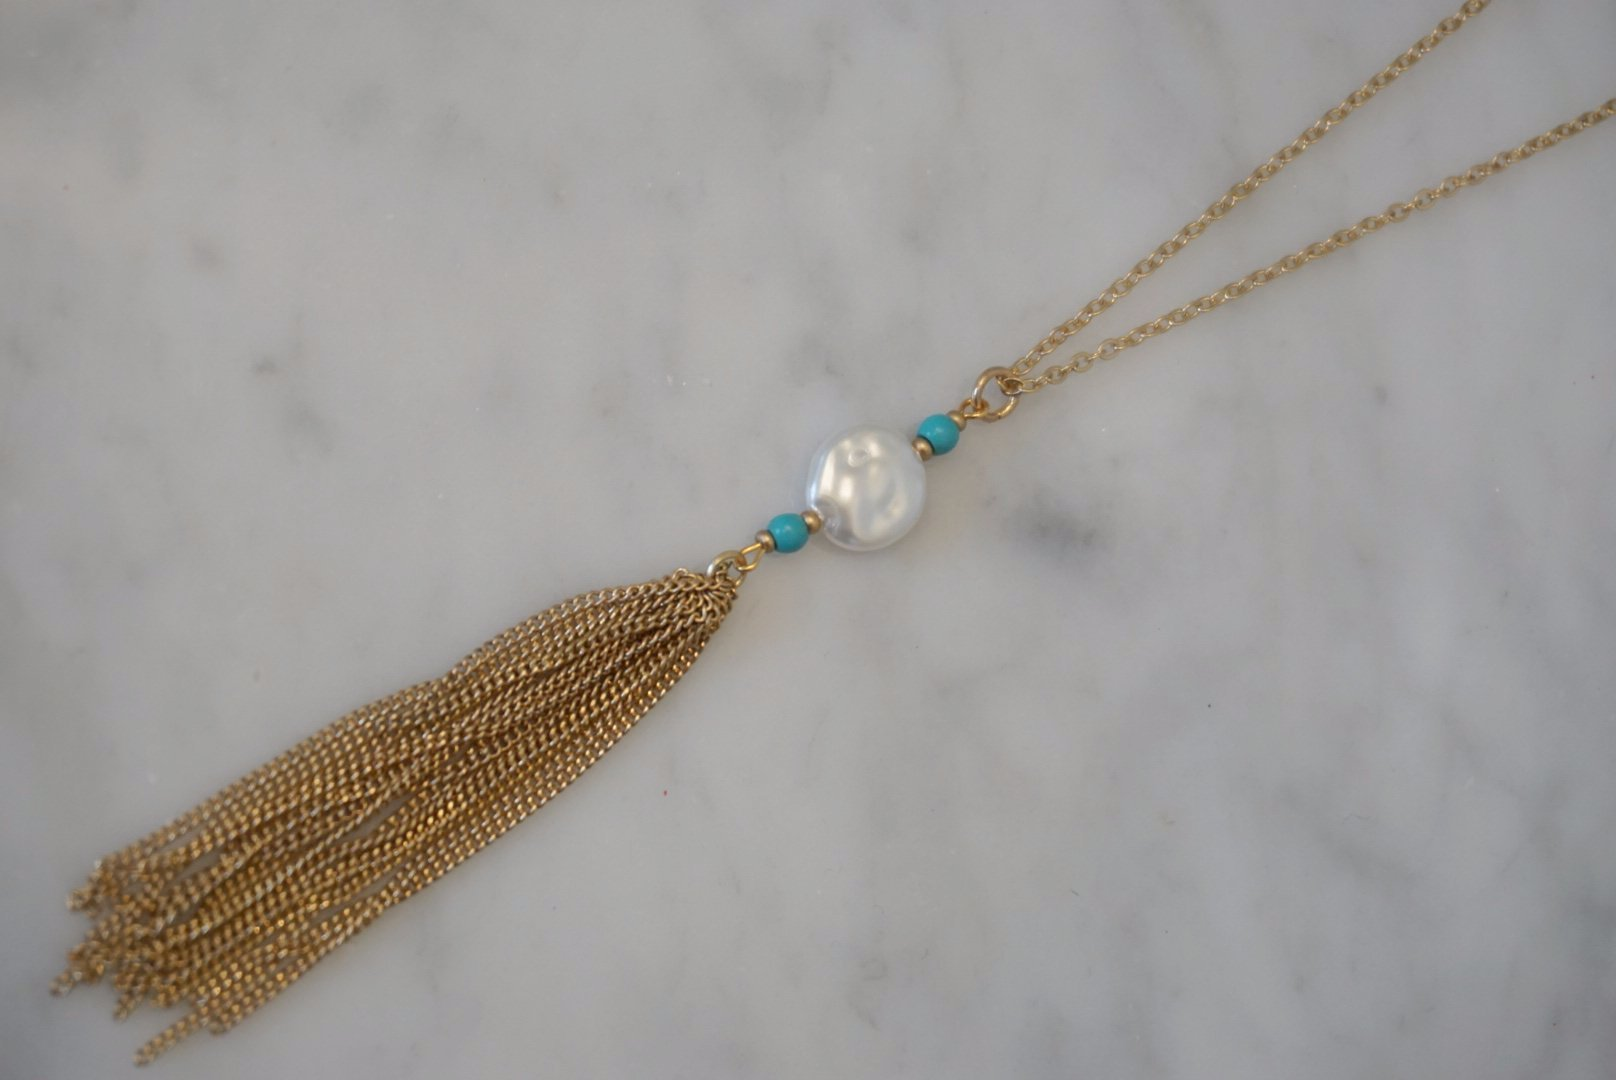 LA2LA Handmade Turquoise & Pearl Color Beaded Necklace